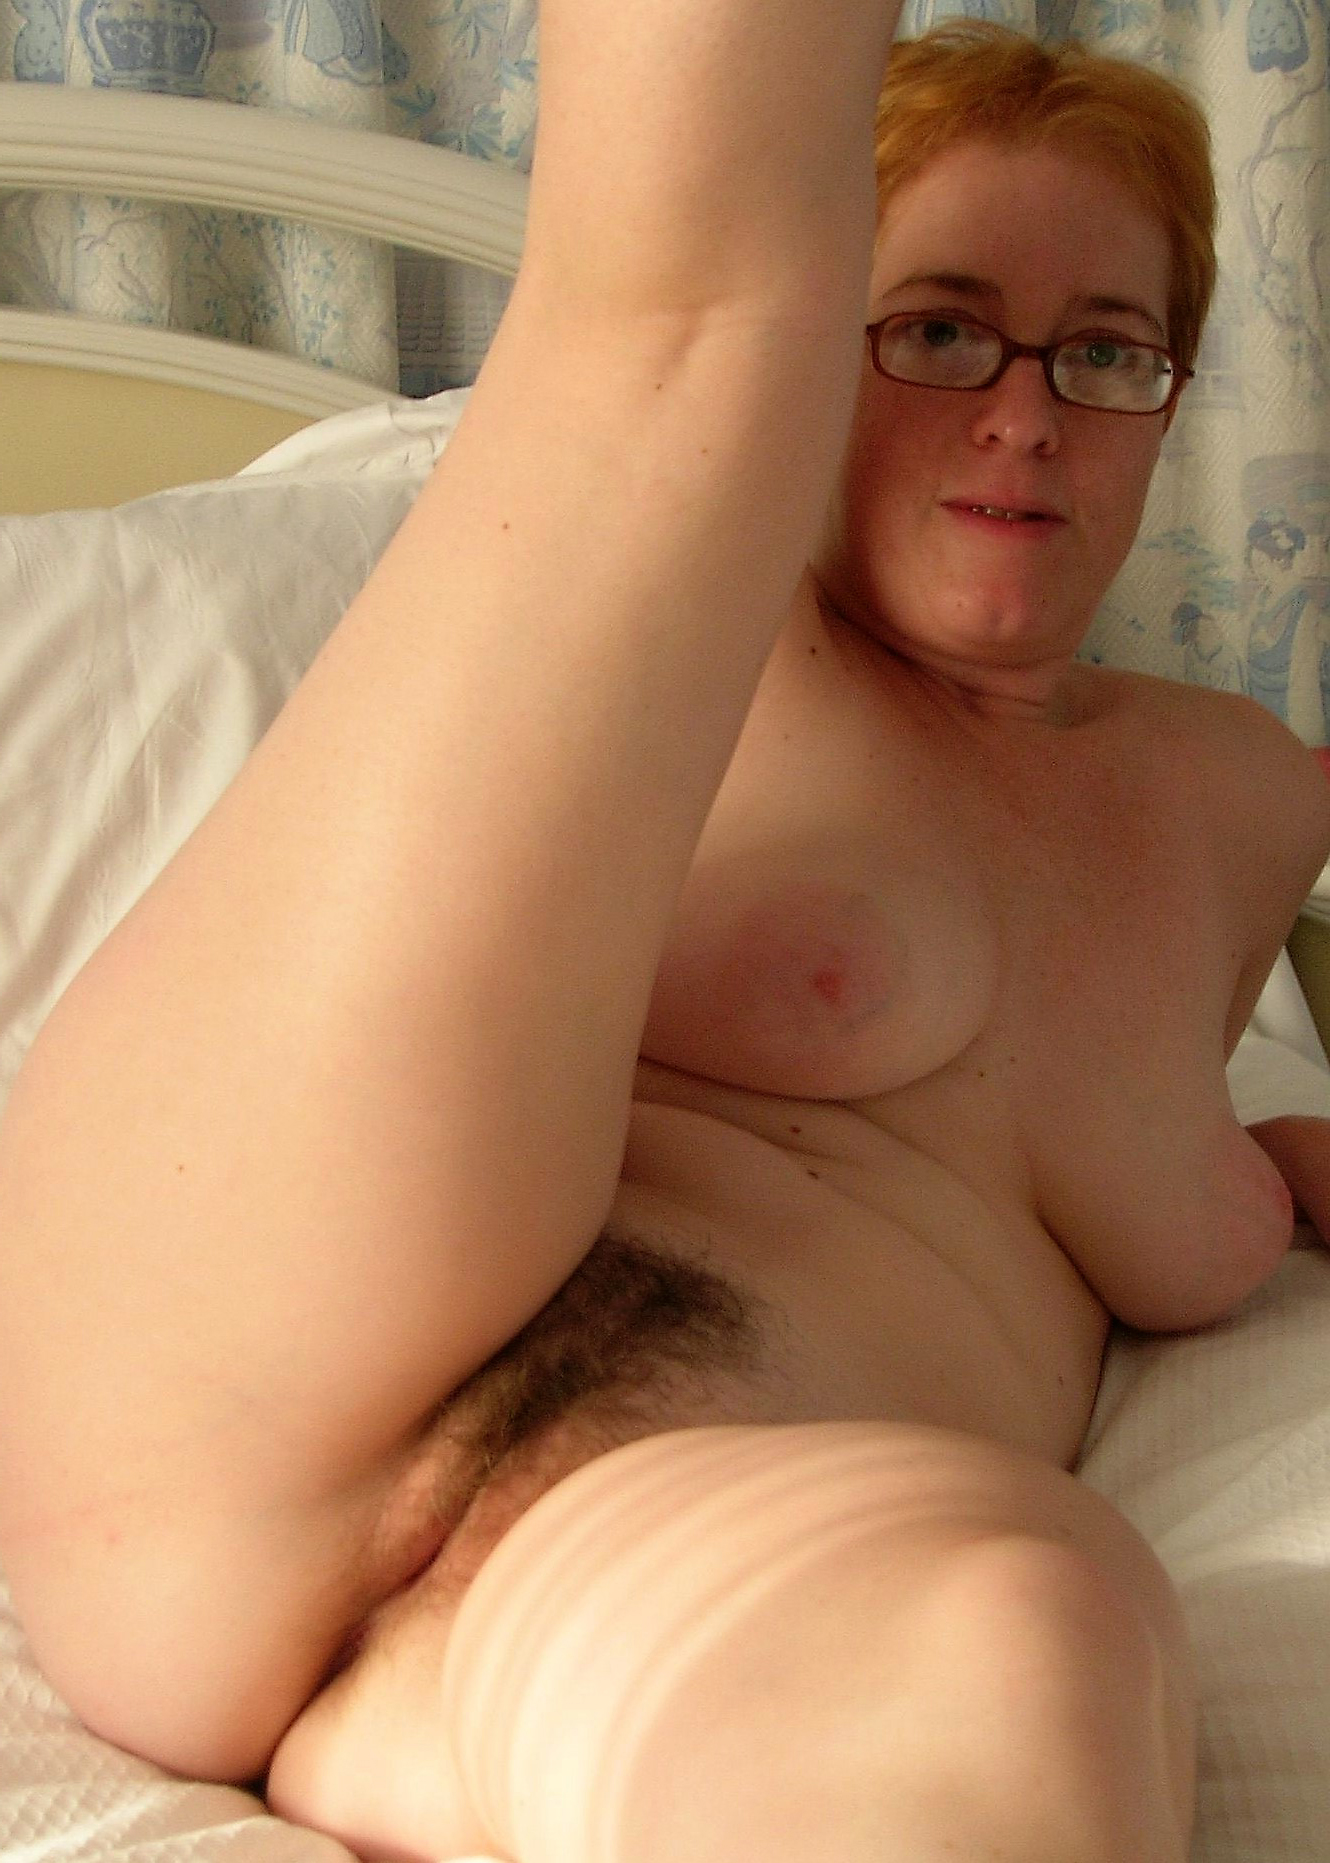 your place chubby girl enjoyng her pussy with me shall agree with